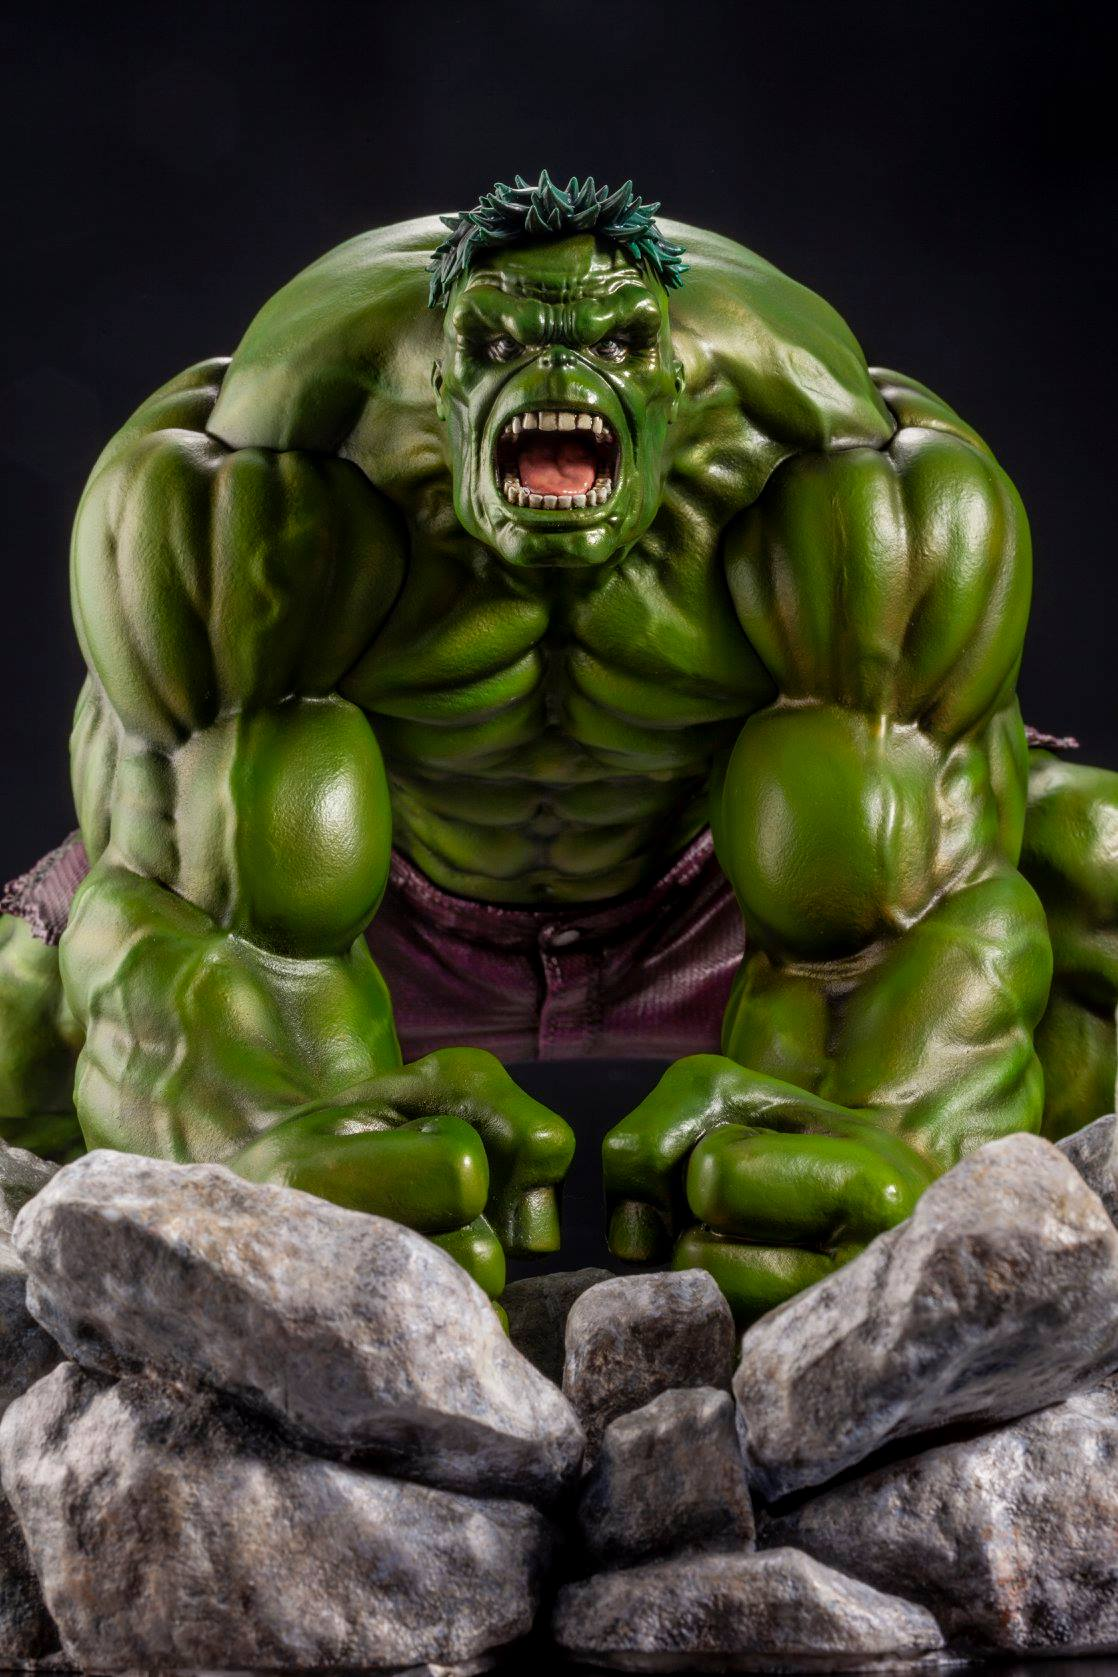 It is an image of Selective Picture of the Hulk